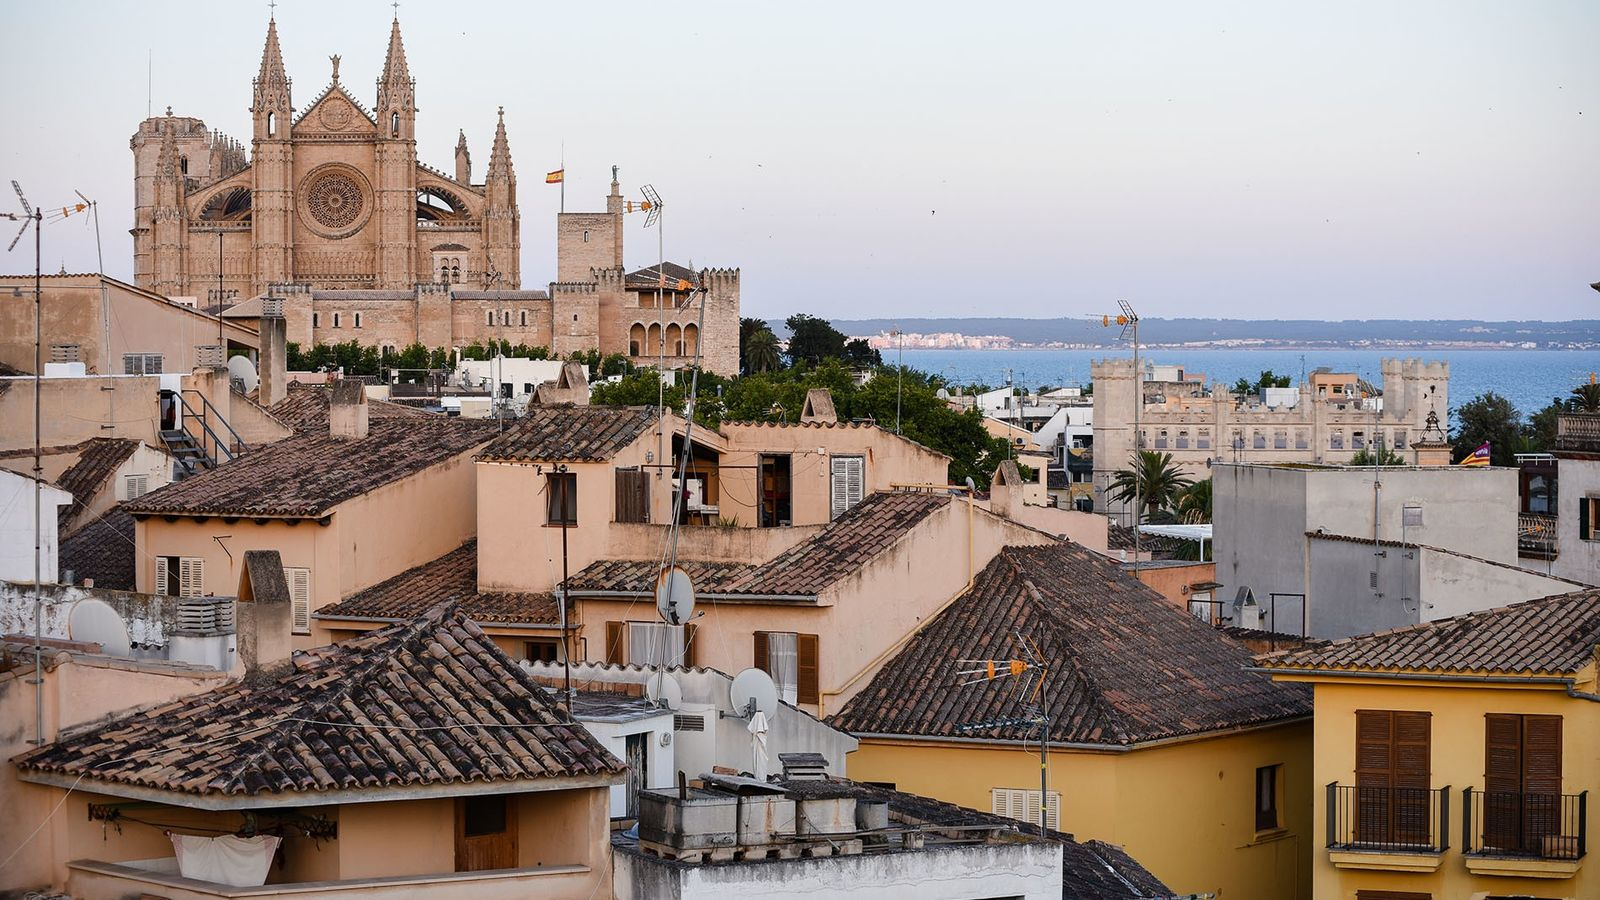 The honey-coloured Palma Cathedral lords itself over the city, with hordes arriving daily to queue to ...